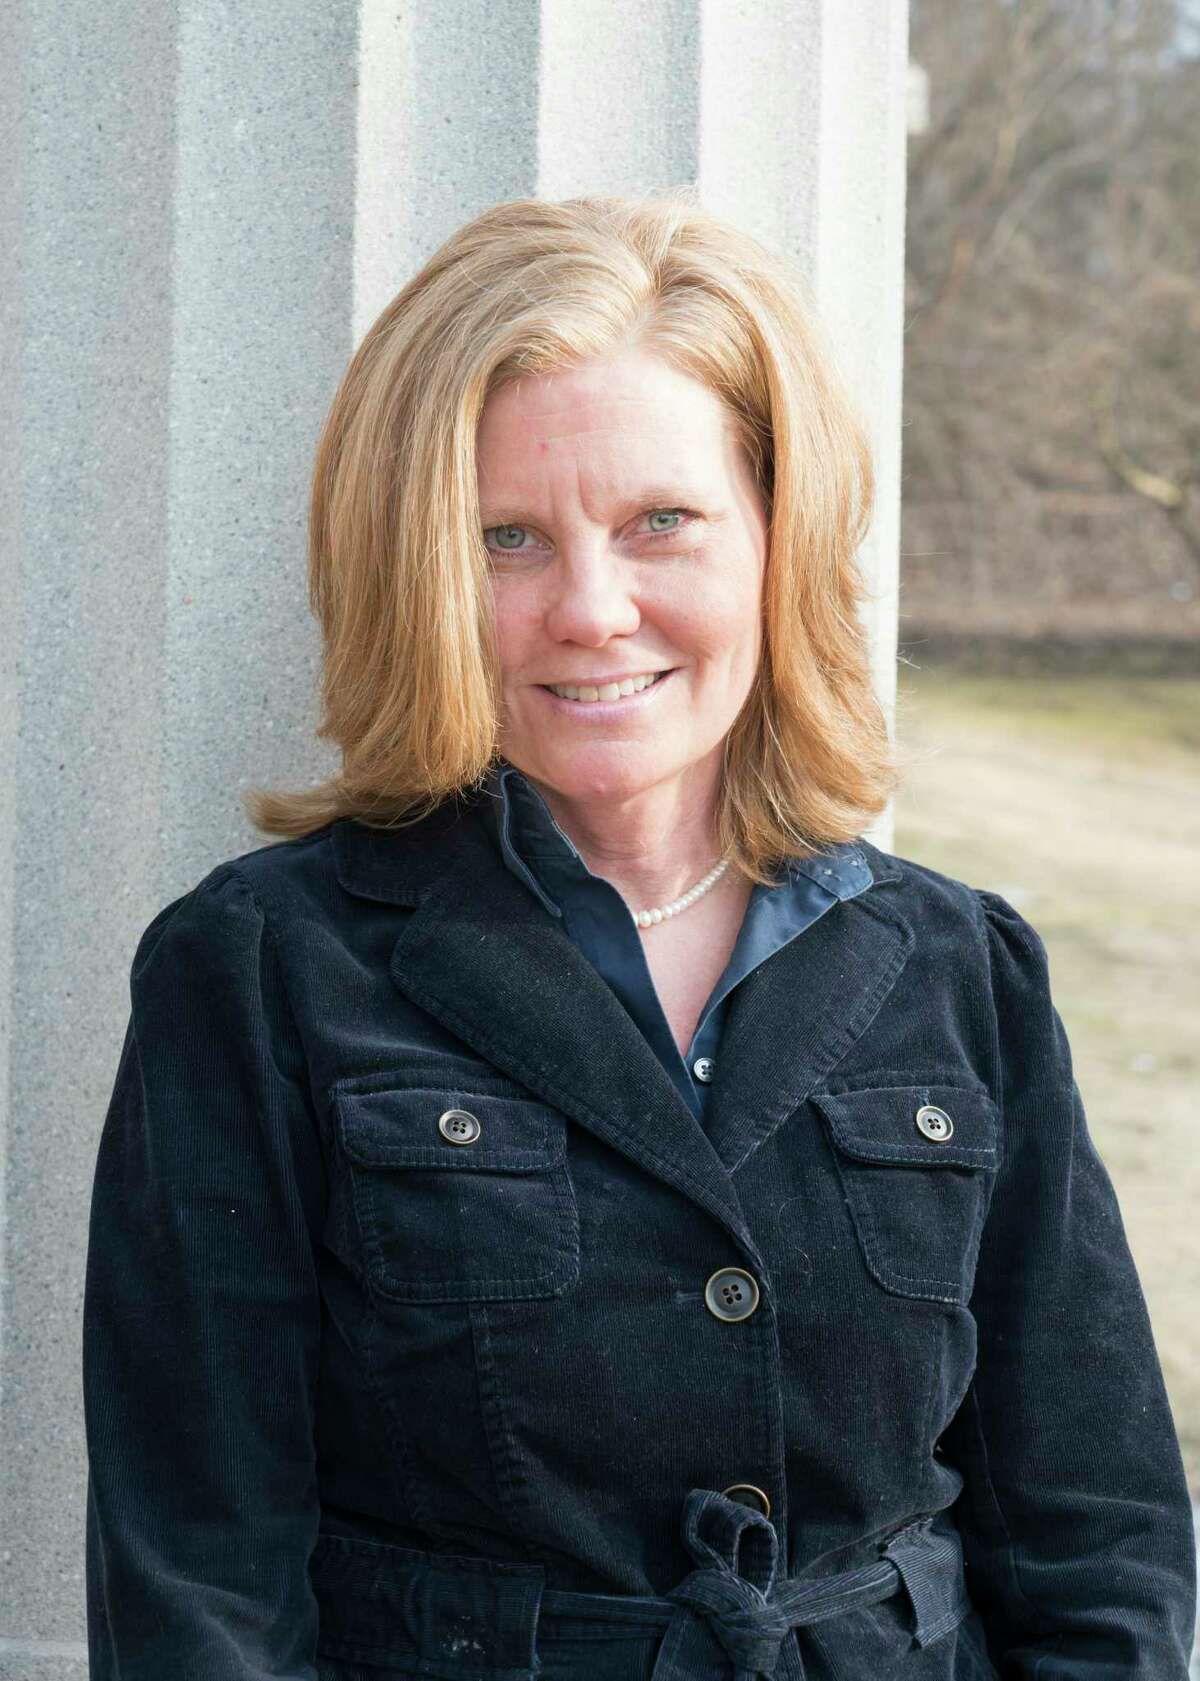 Patricia Morrison emerged as the winner of the Saratoga Springs Commissioner of Finance primary race, assuring her name on the Democratic line in November. (Provided photo)